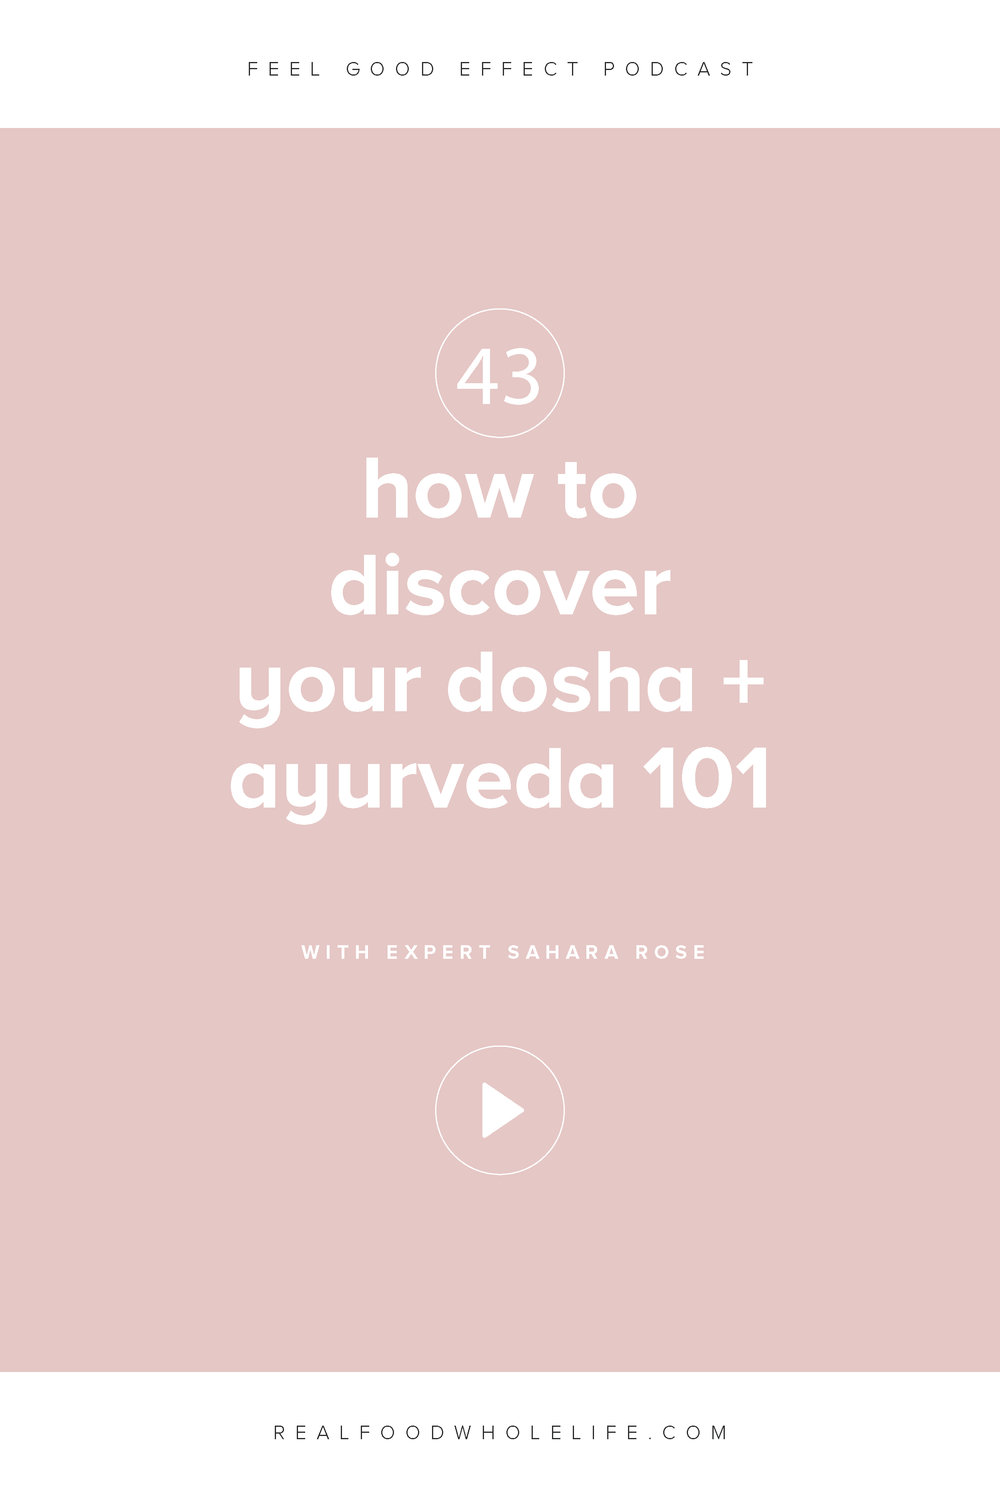 How to Discover Your Dosha + Ayurveda 101 with Sahara Rose, Feel Good Effect Podcast